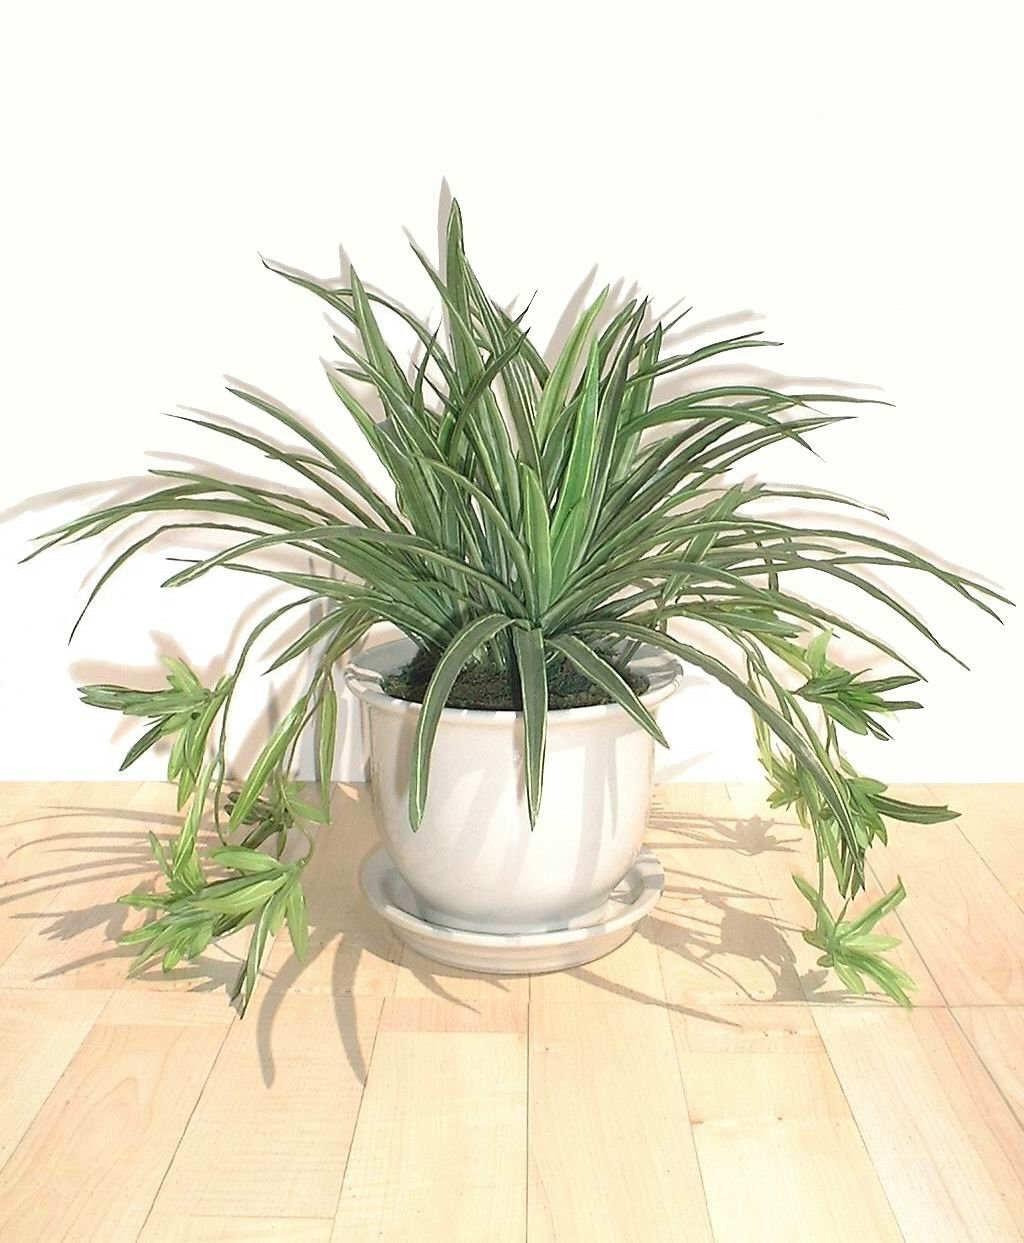 Neuhaus Decor 14'' Spider Plant, Artificial Bush (WITHOUT POT)